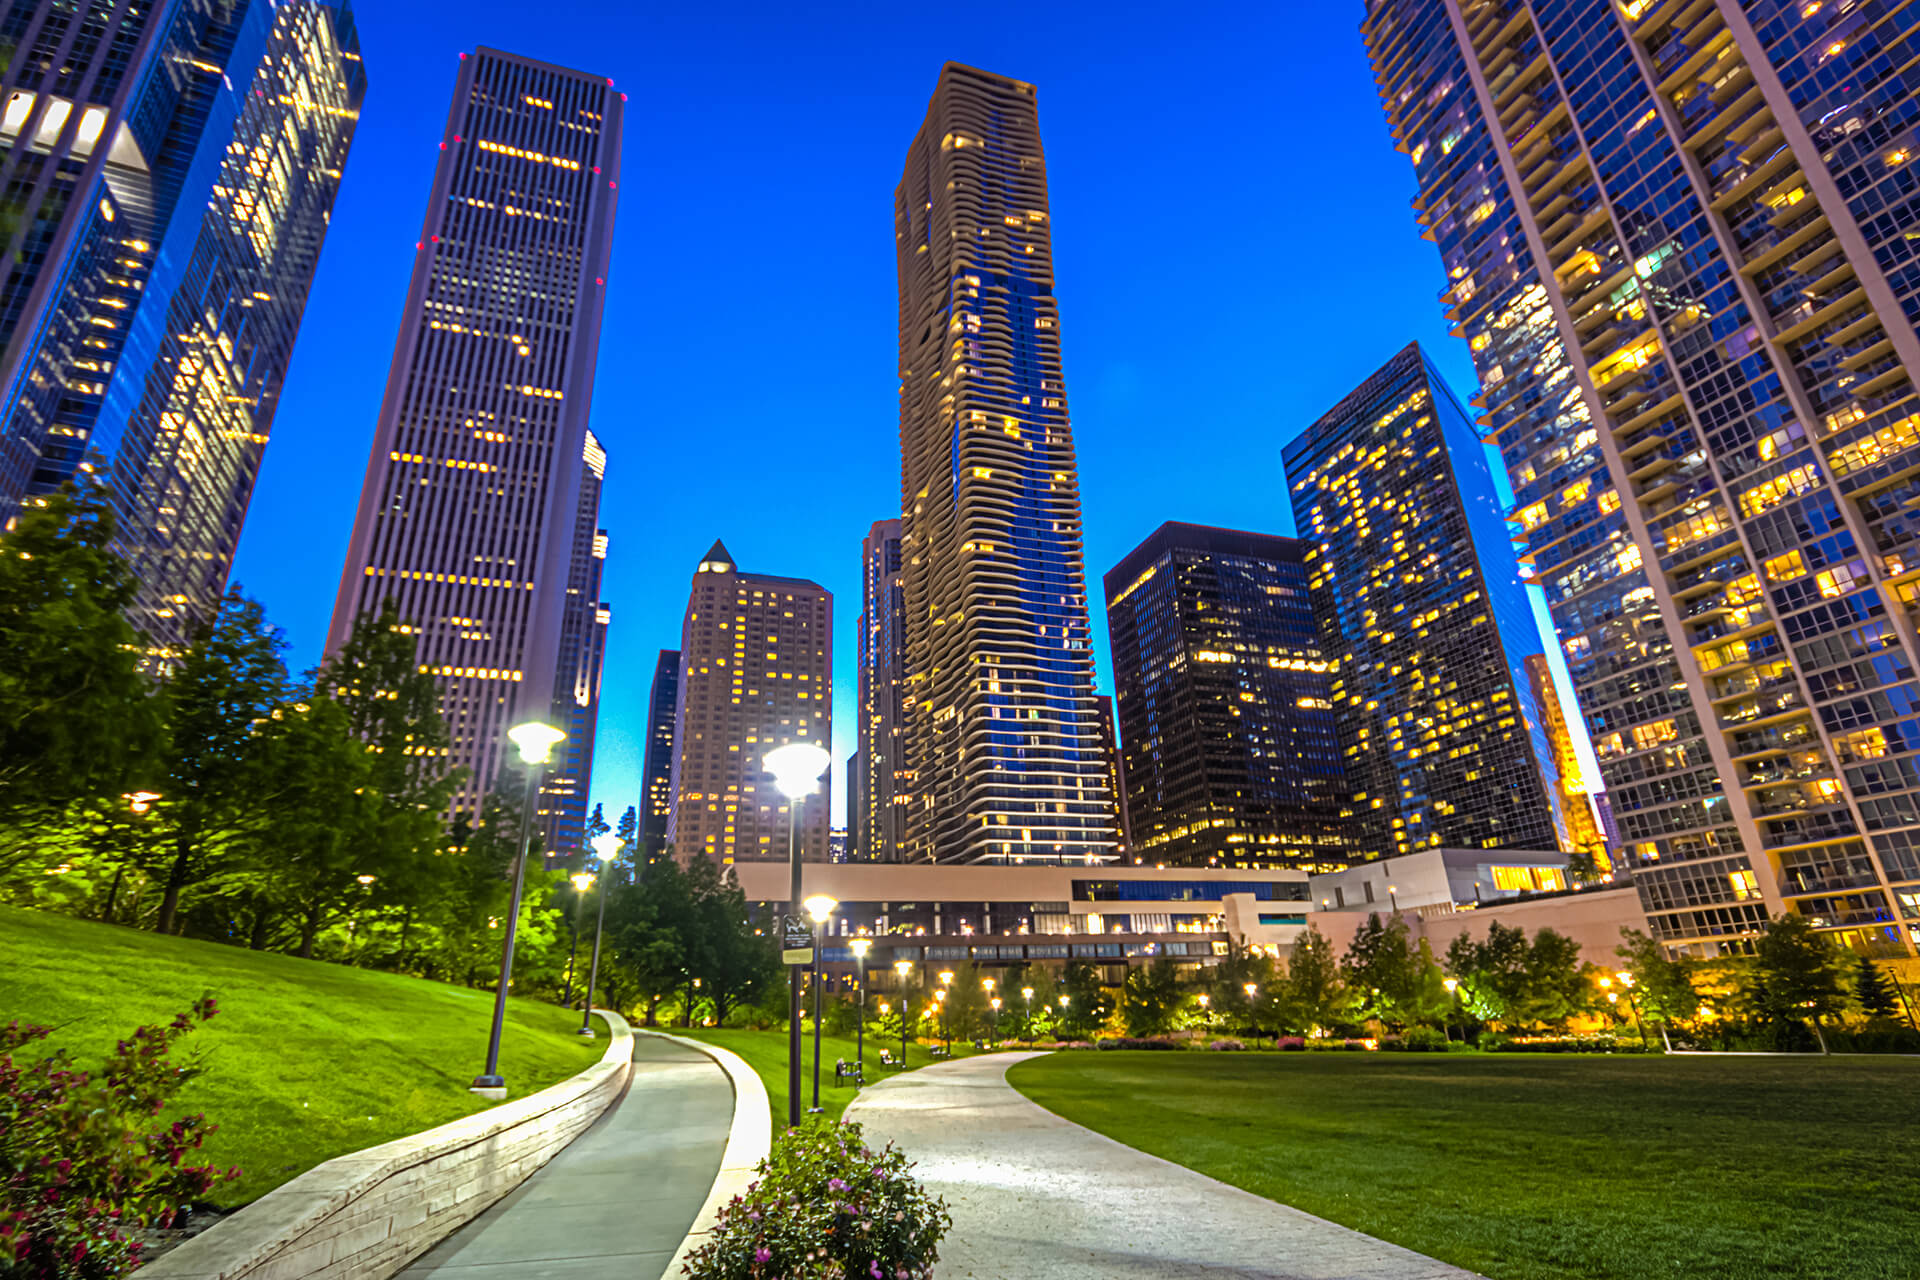 Lakeshore East Park, Chicago at Night